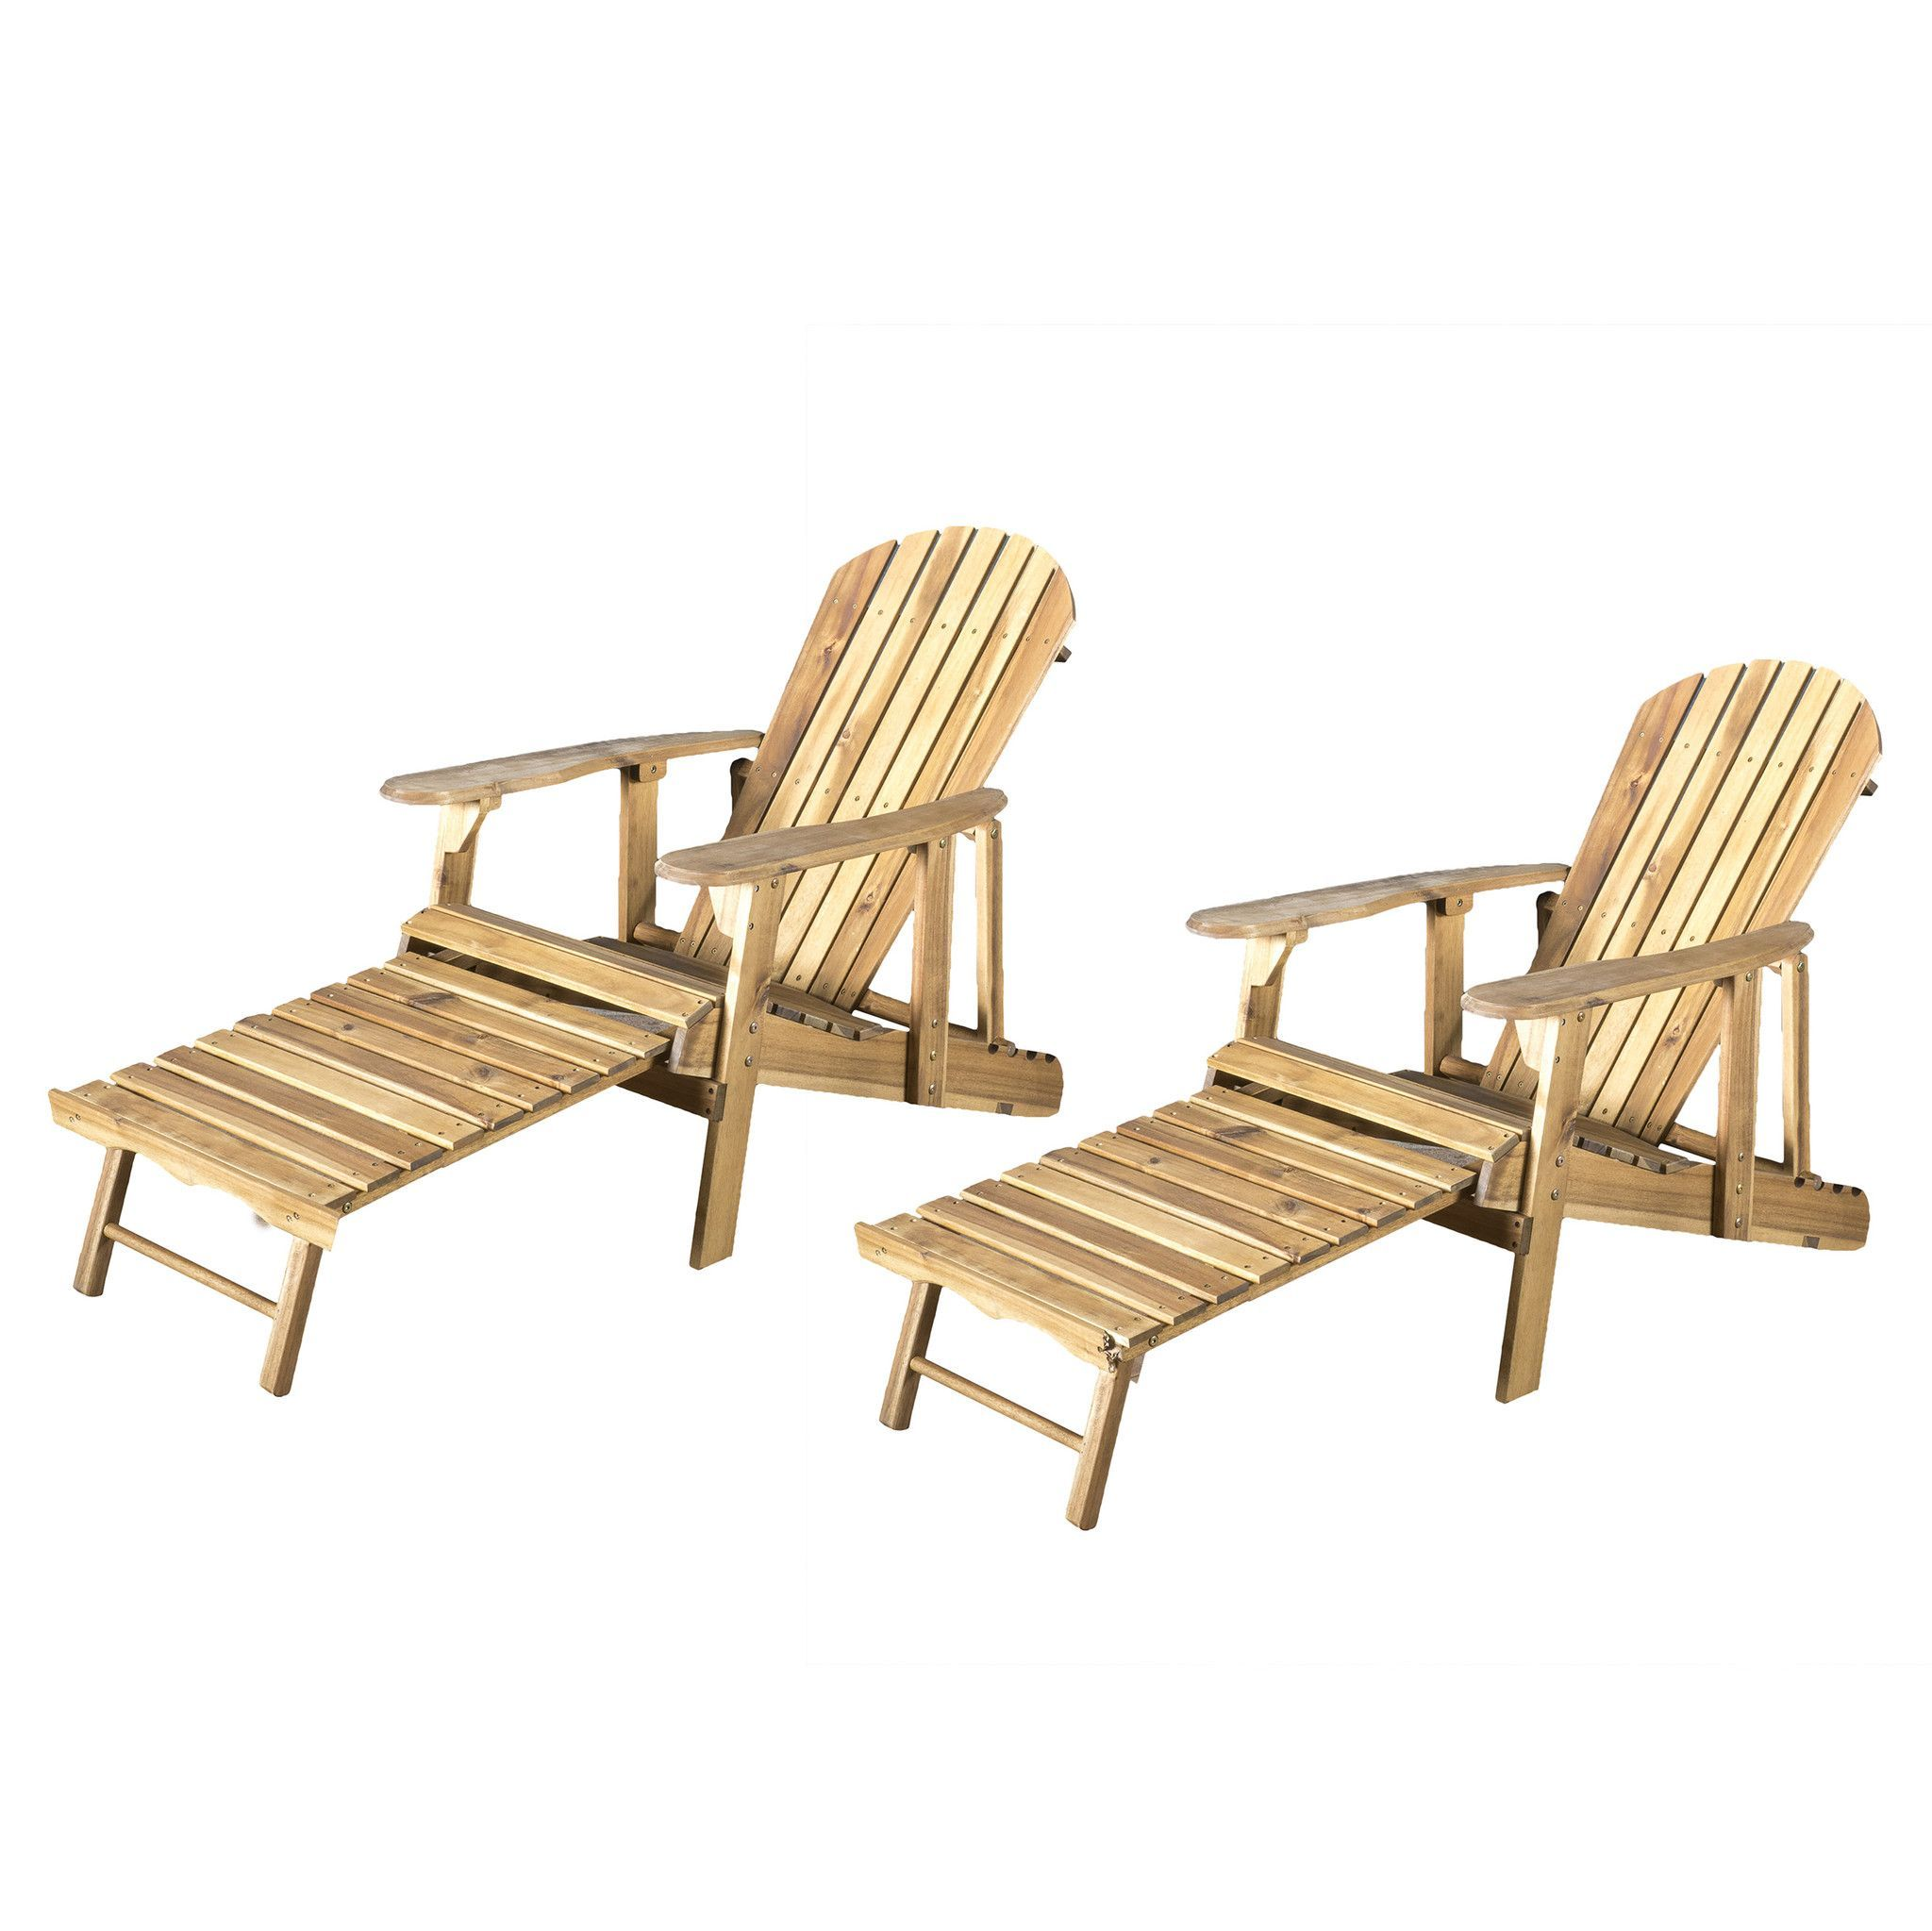 Katherine Outdoor Reclining Wood Adirondack Chair With Footrest Set Of 2 Products Wood Adirondack Chairs Recliner Outdoor Chairs